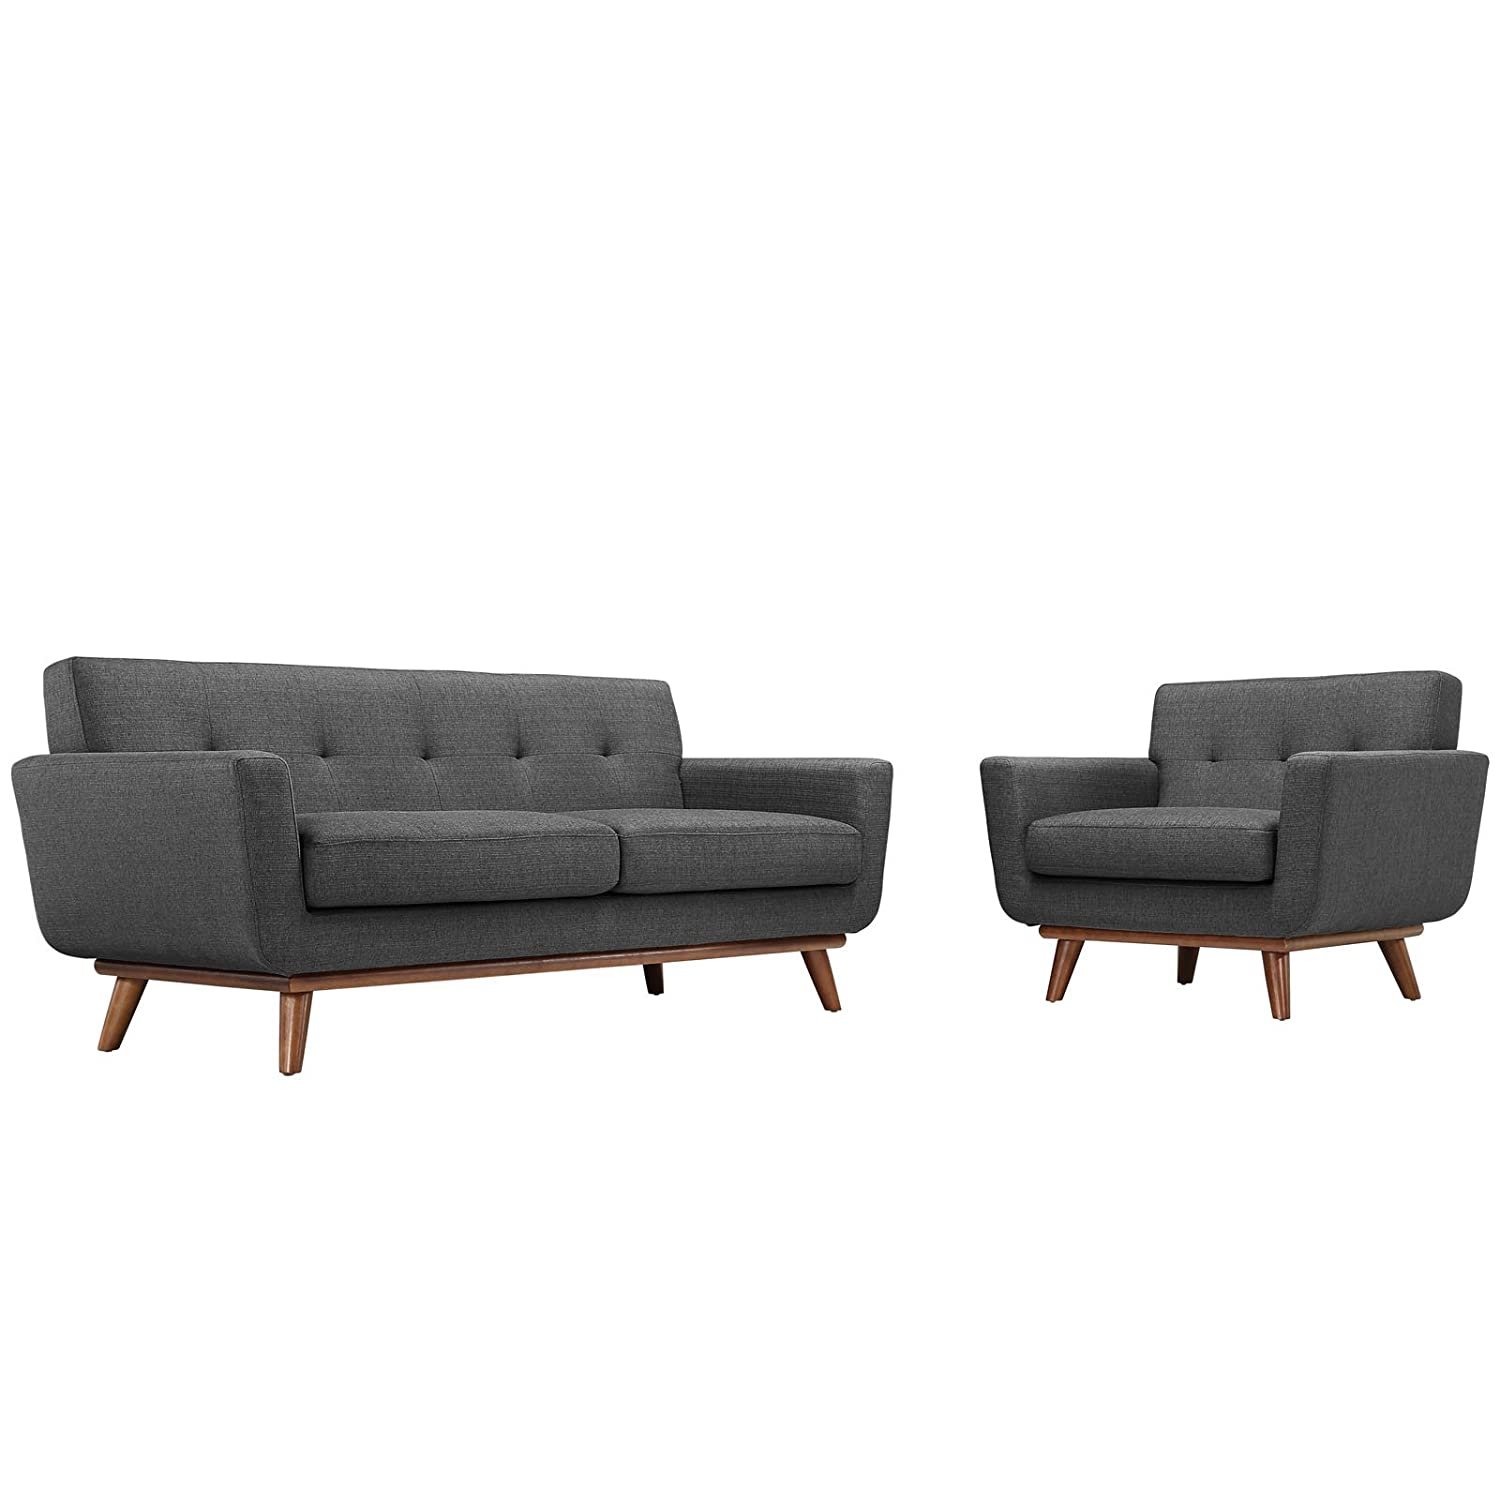 Modway Engage Armchair and Loveseat Set of 2 in Gray